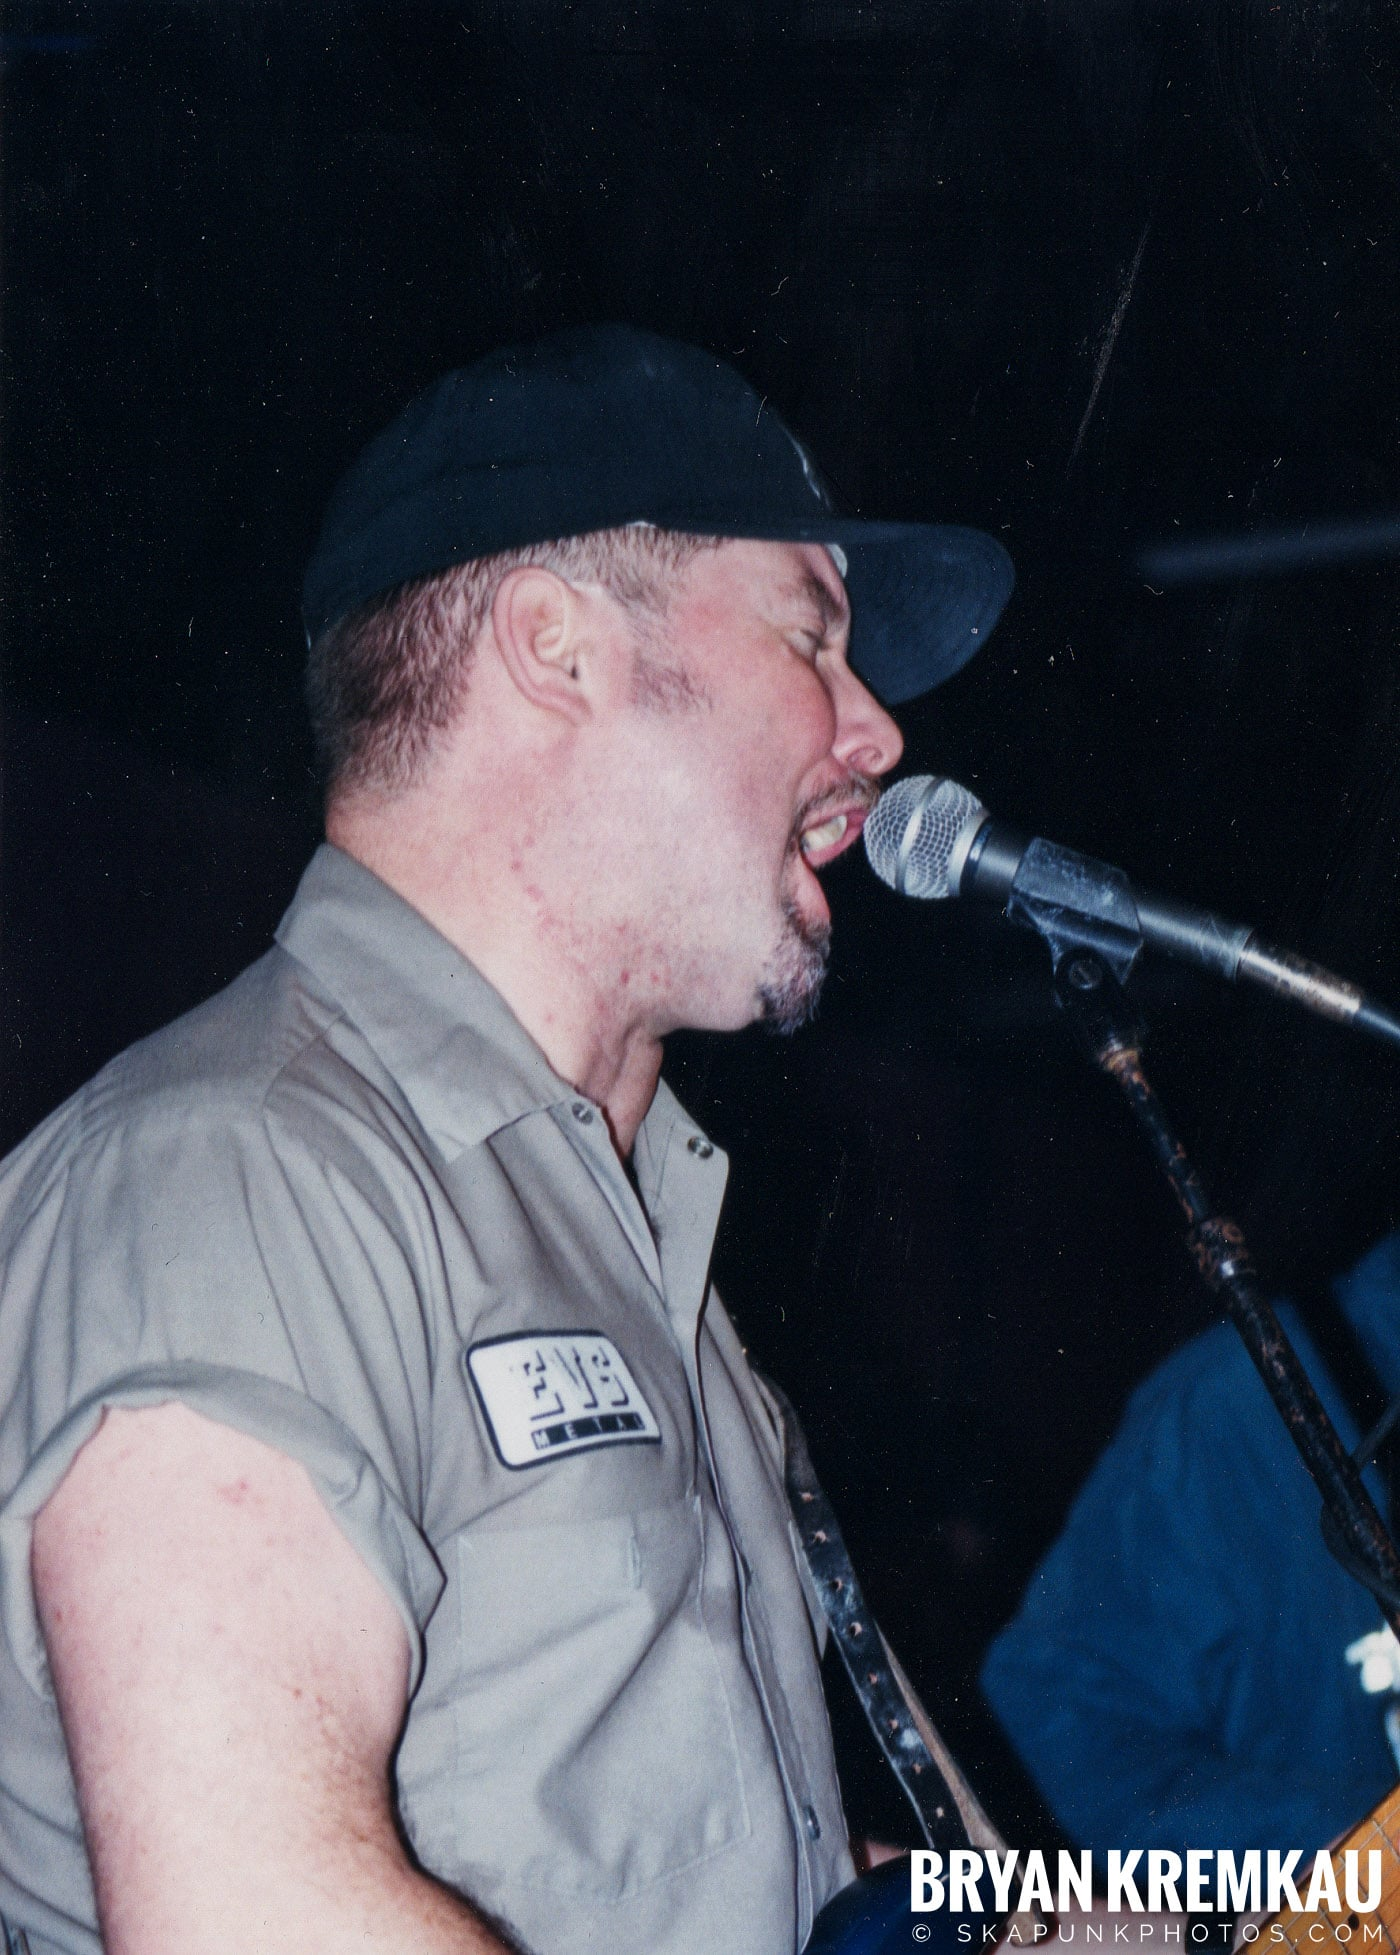 The Toasters @ Skater's World, Wayne, NJ - 11.29.98 (22)